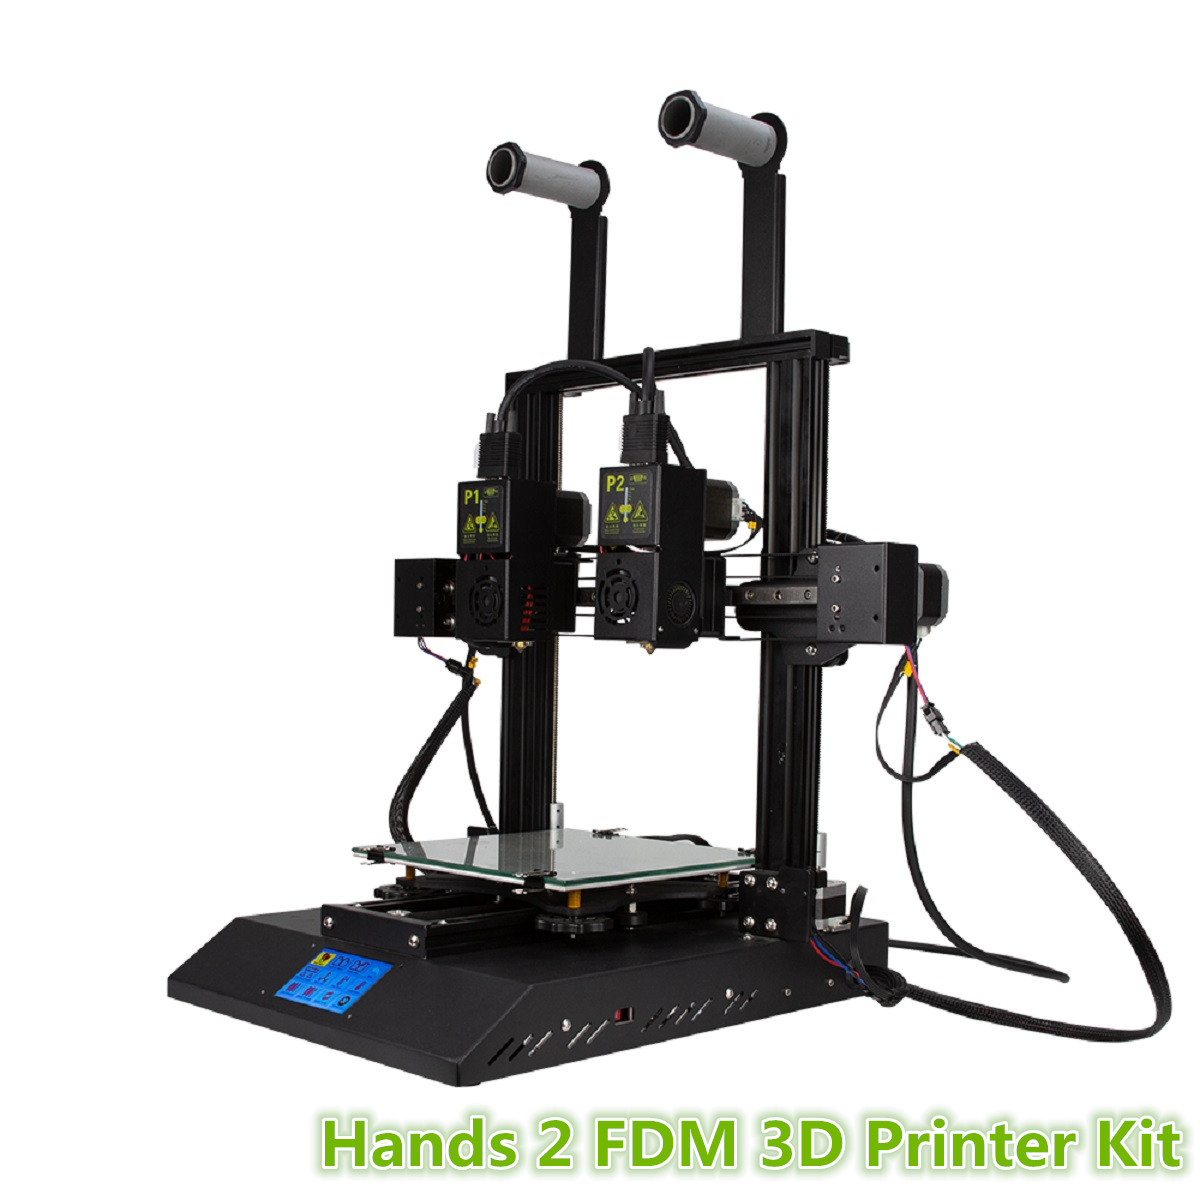 Hands 2 FDM 3D Printer Kit with 3.5 inch Colorful Screen Dual Extruder & Nozzle Powerful Mainboard/Modular Xaxis/Extrusion Motor